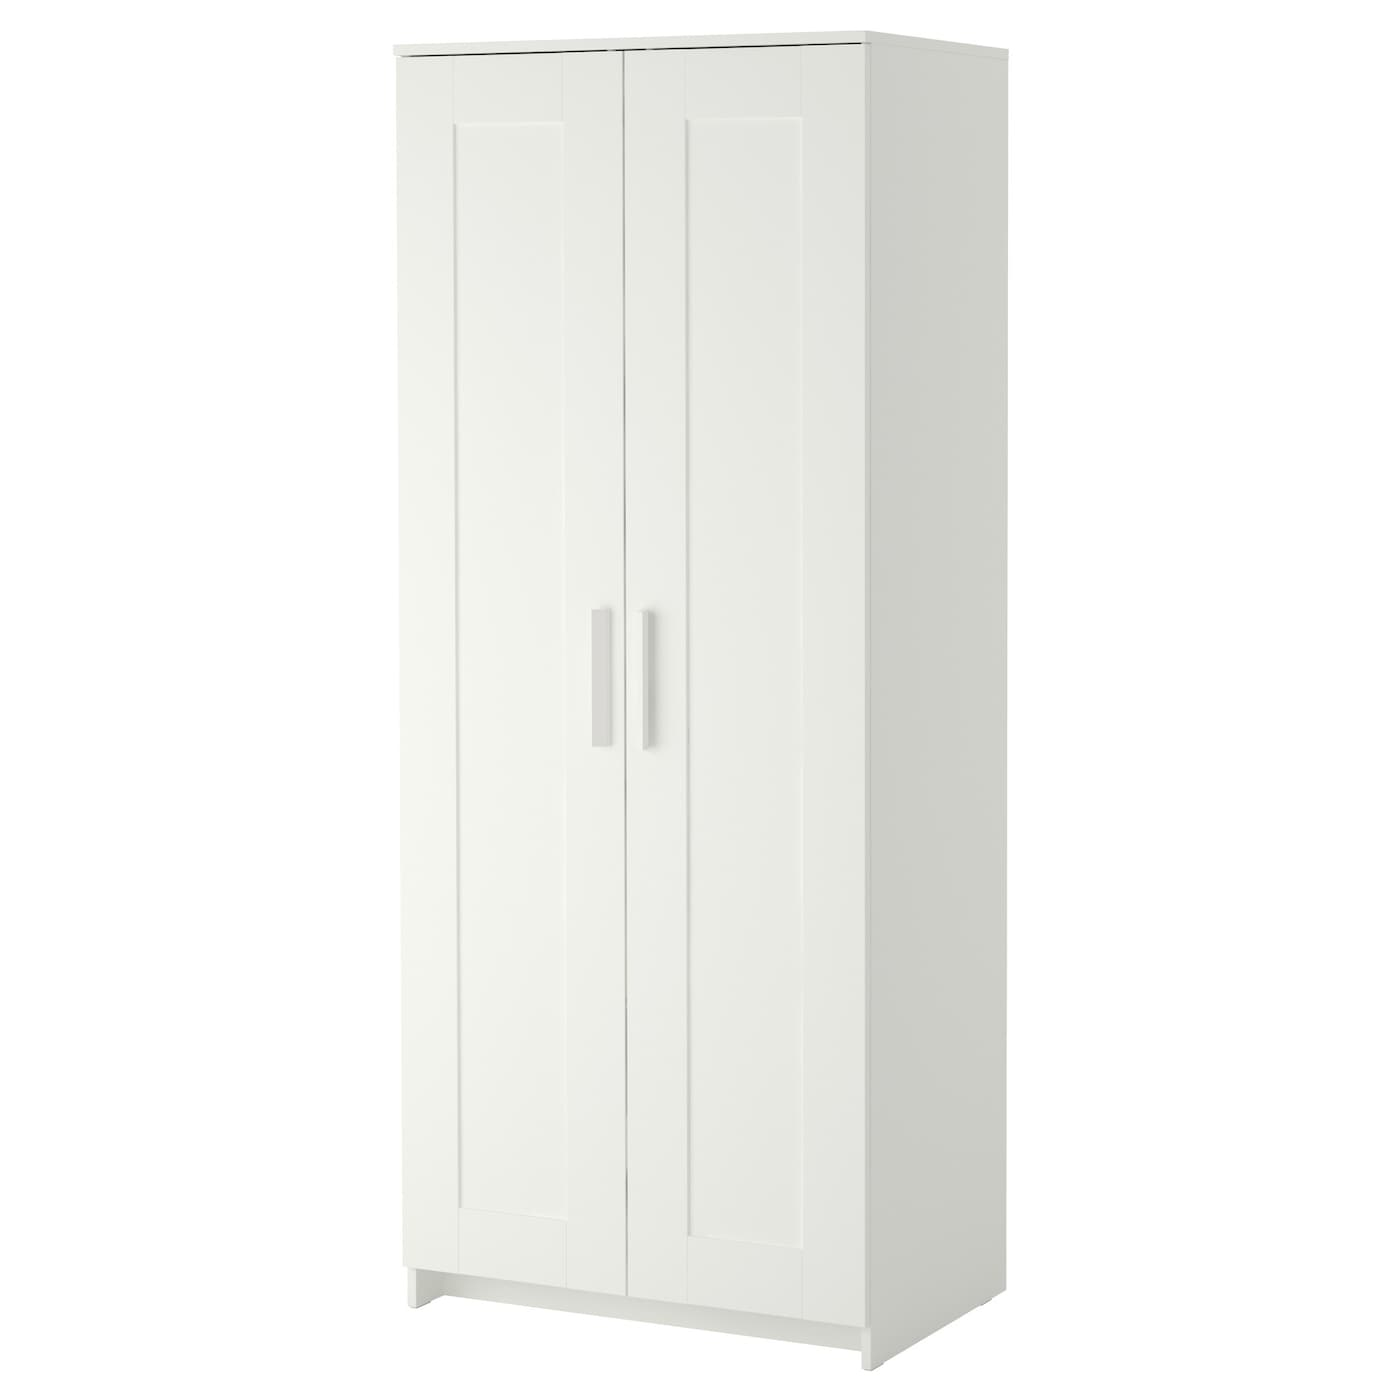 BRIMNES Wardrobe With Doors White X Cm IKEA - Ikea wardrobe